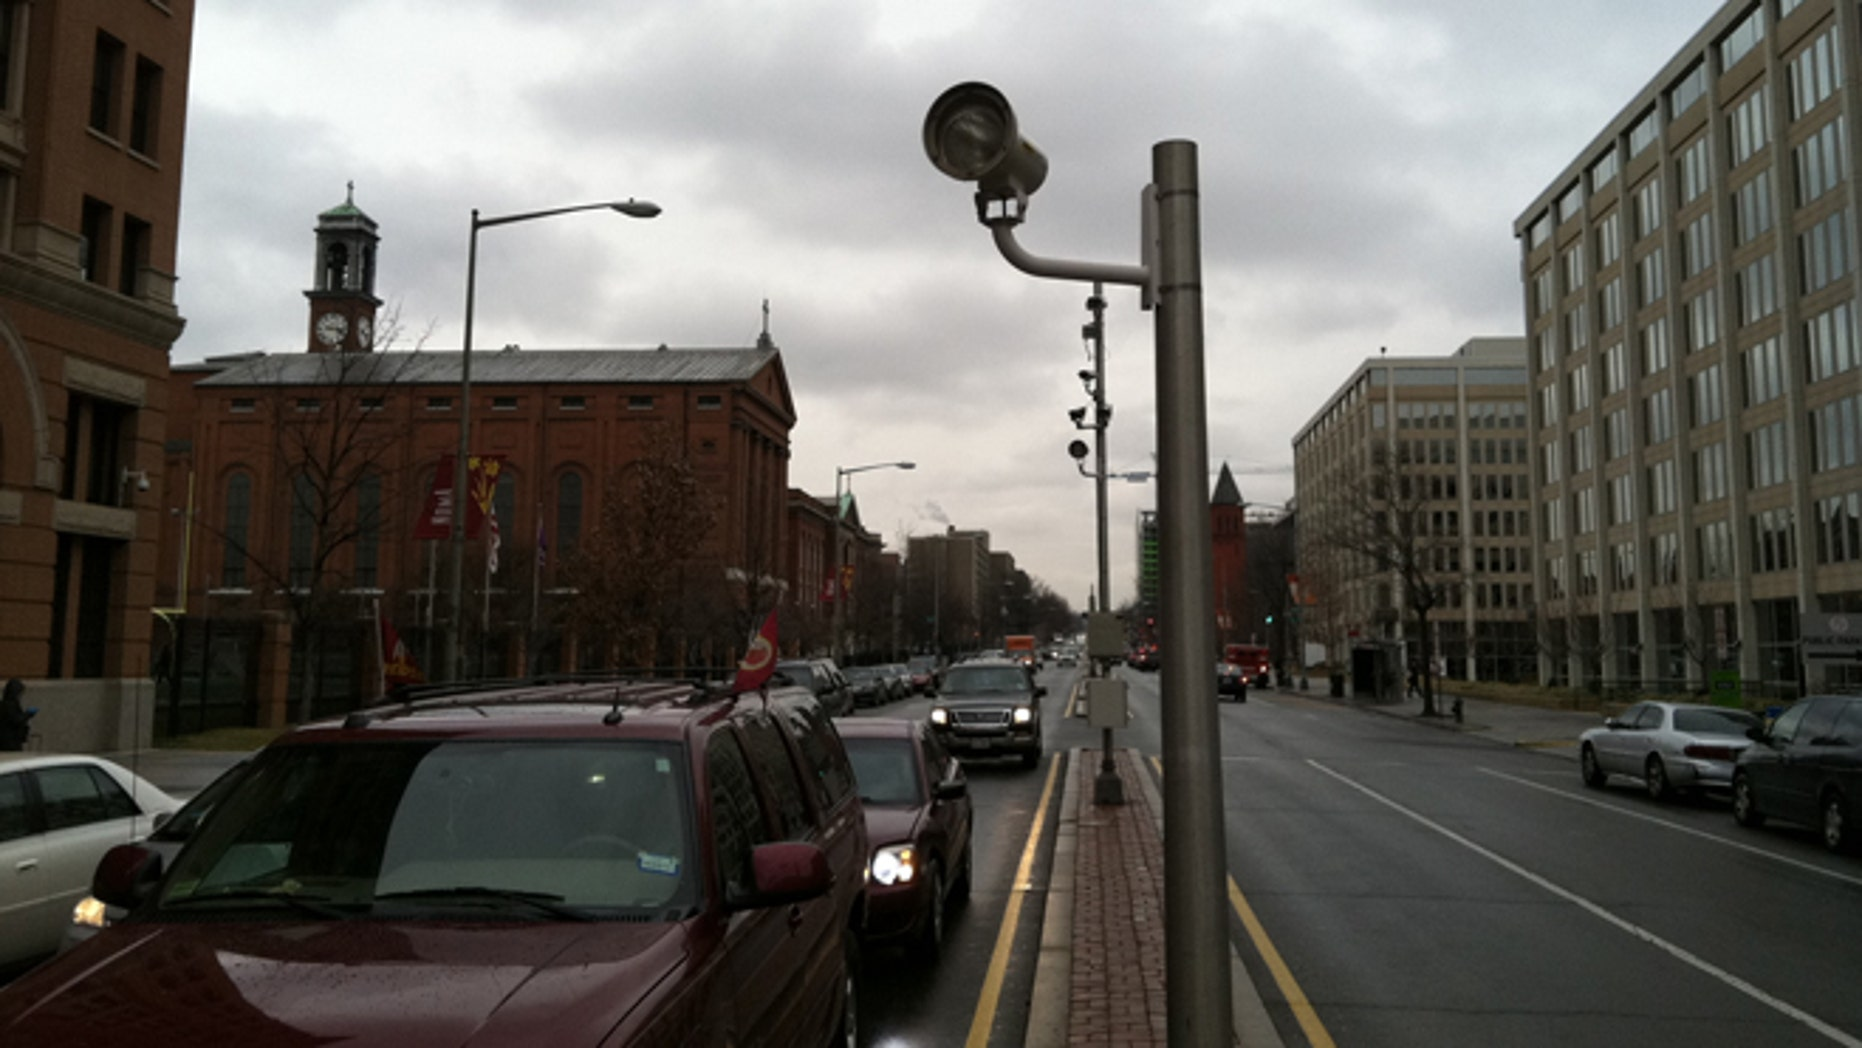 Feb. 22, 2013: Shown here is a red-light camera in downtown Washington, D.C.